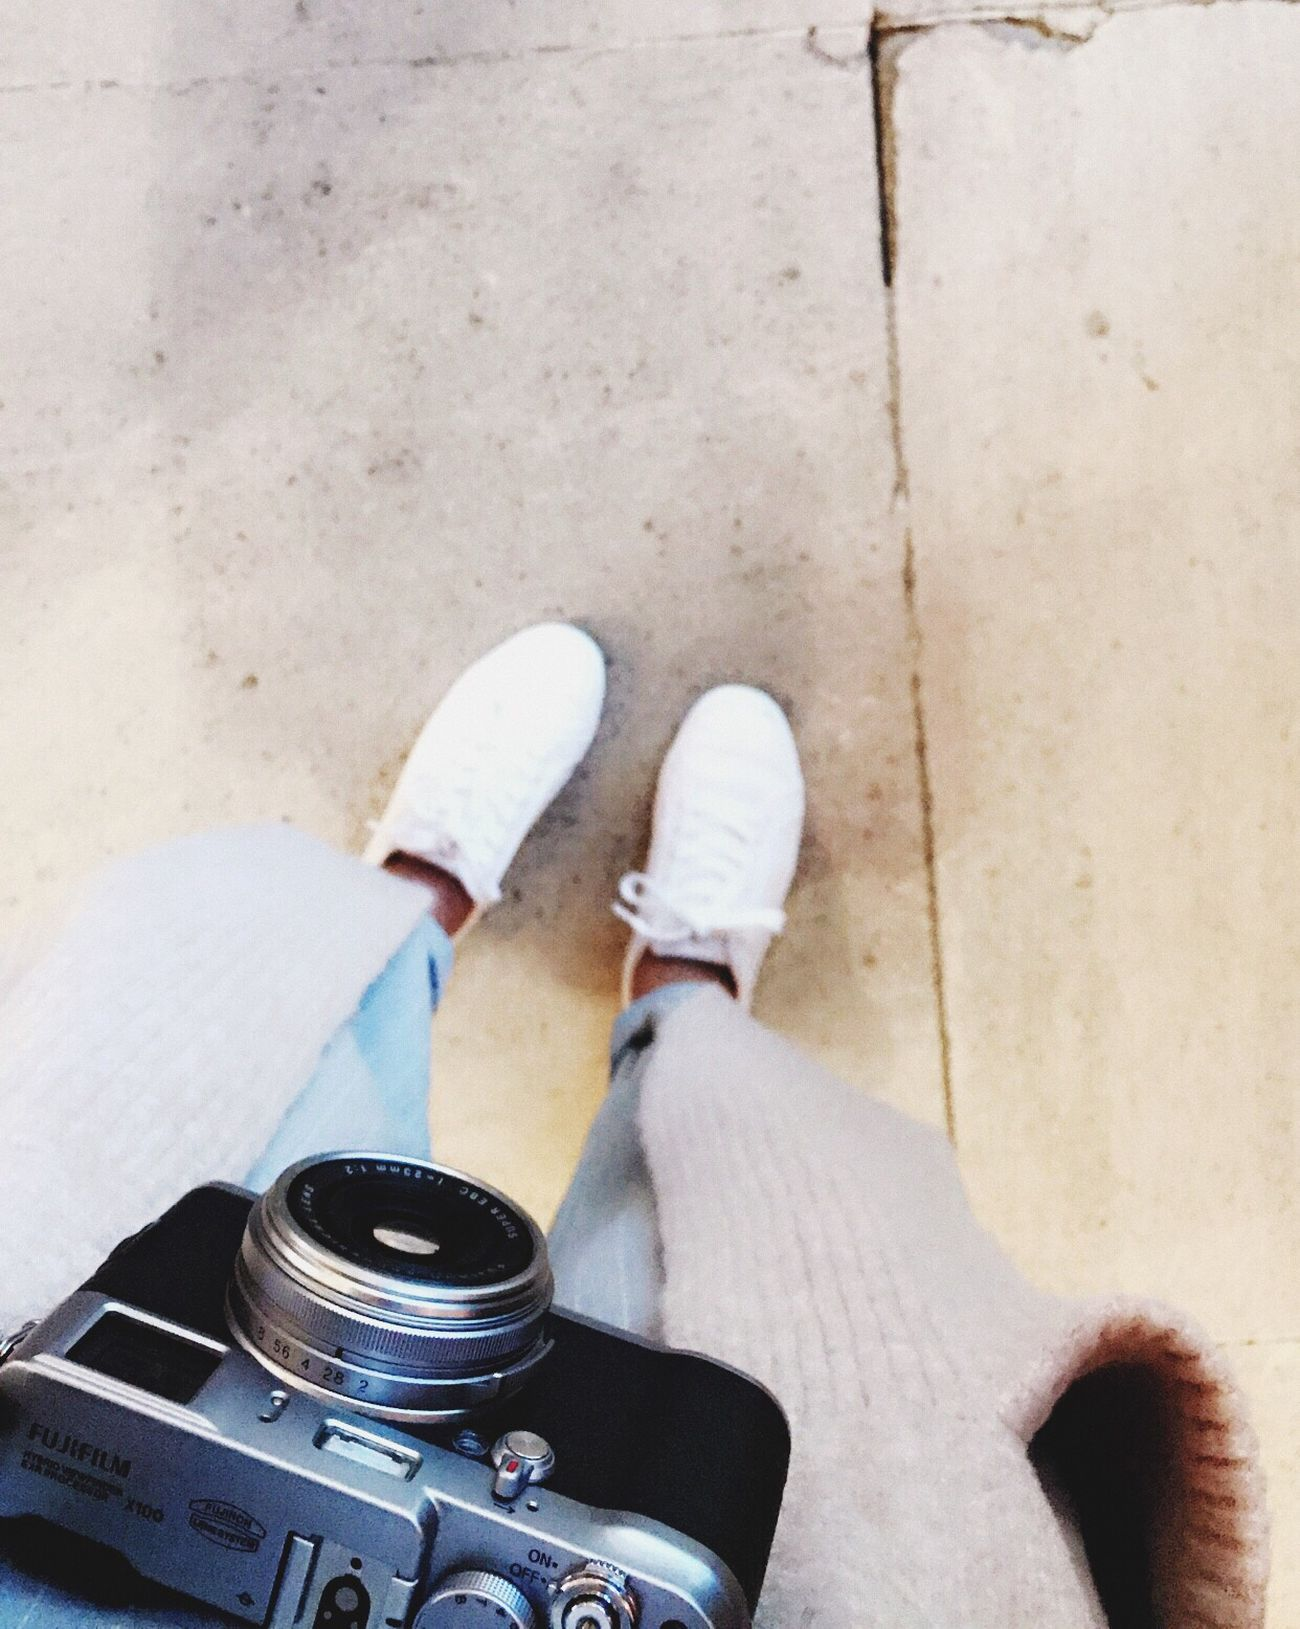 Camera - Photographic Equipment Shoe IPhoneography EyeEm Best Shots Travel Photography EyeEmBestEdits IPhone My Favorite  Popular Love Me